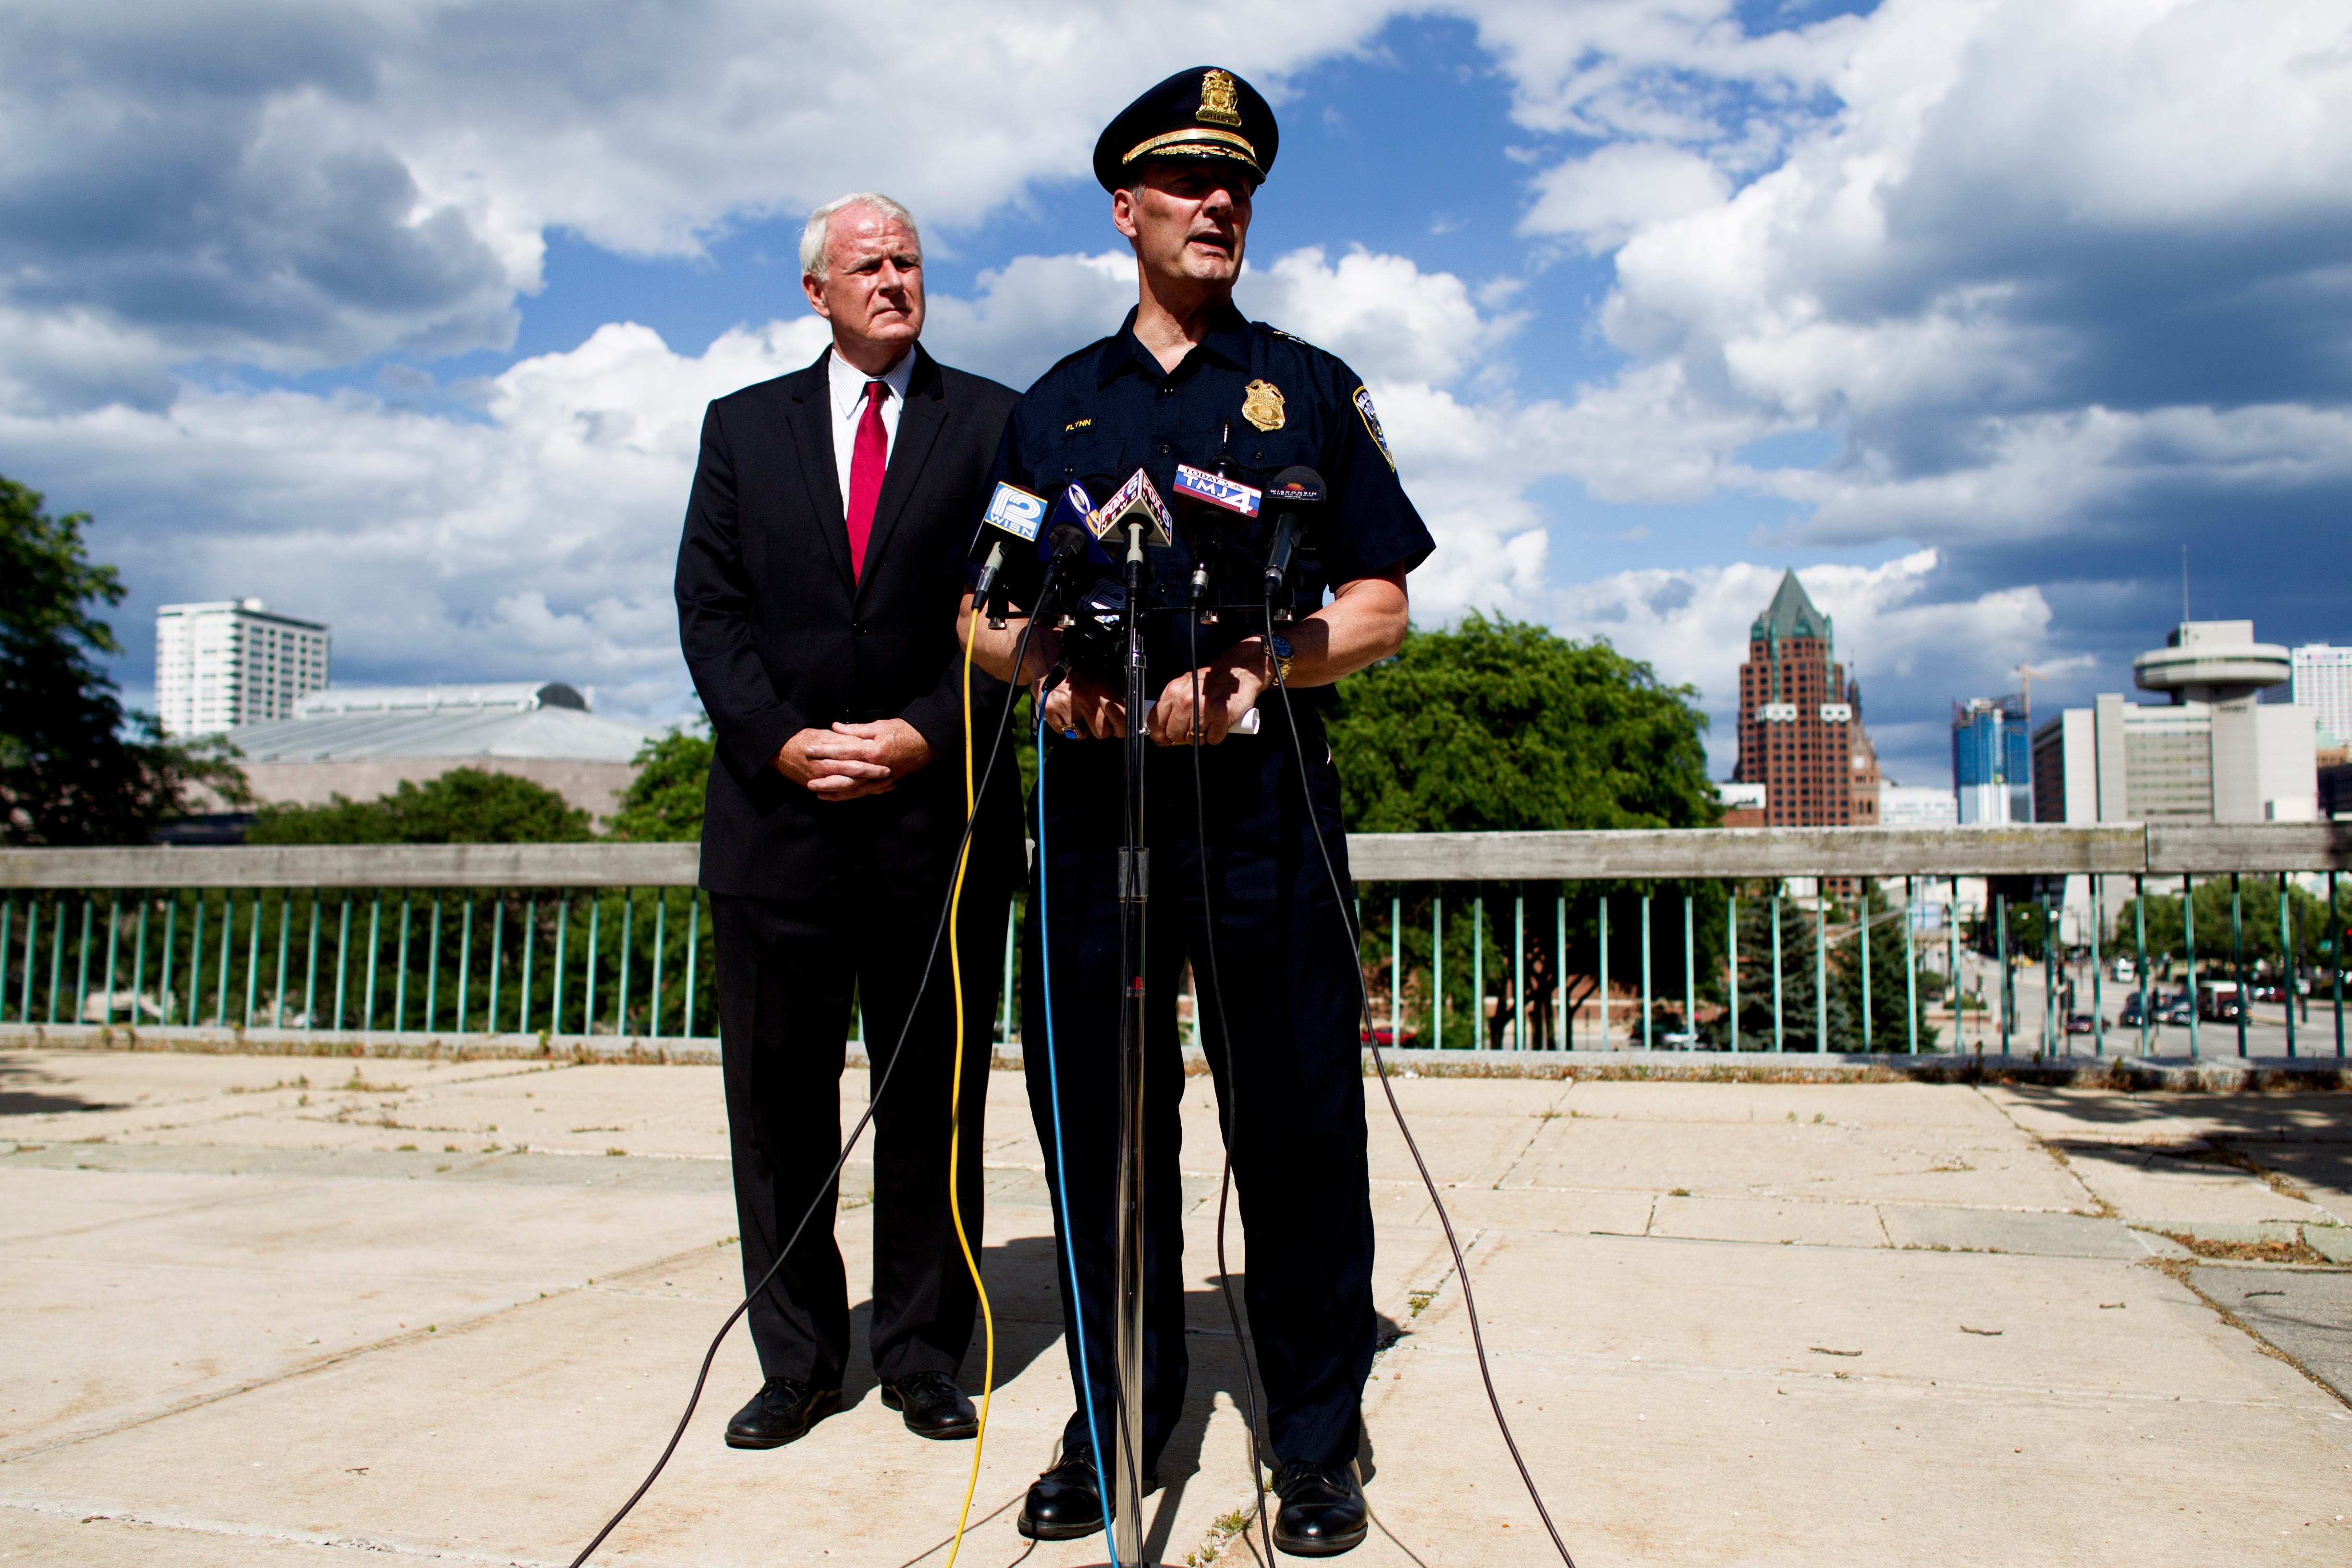 Milwaukee Police Chief Edward Flynn and Milwaukee Mayor Tom Barrett appeared together at a MacArthur Square news conference in 2016. Flynn retired less than two years later.